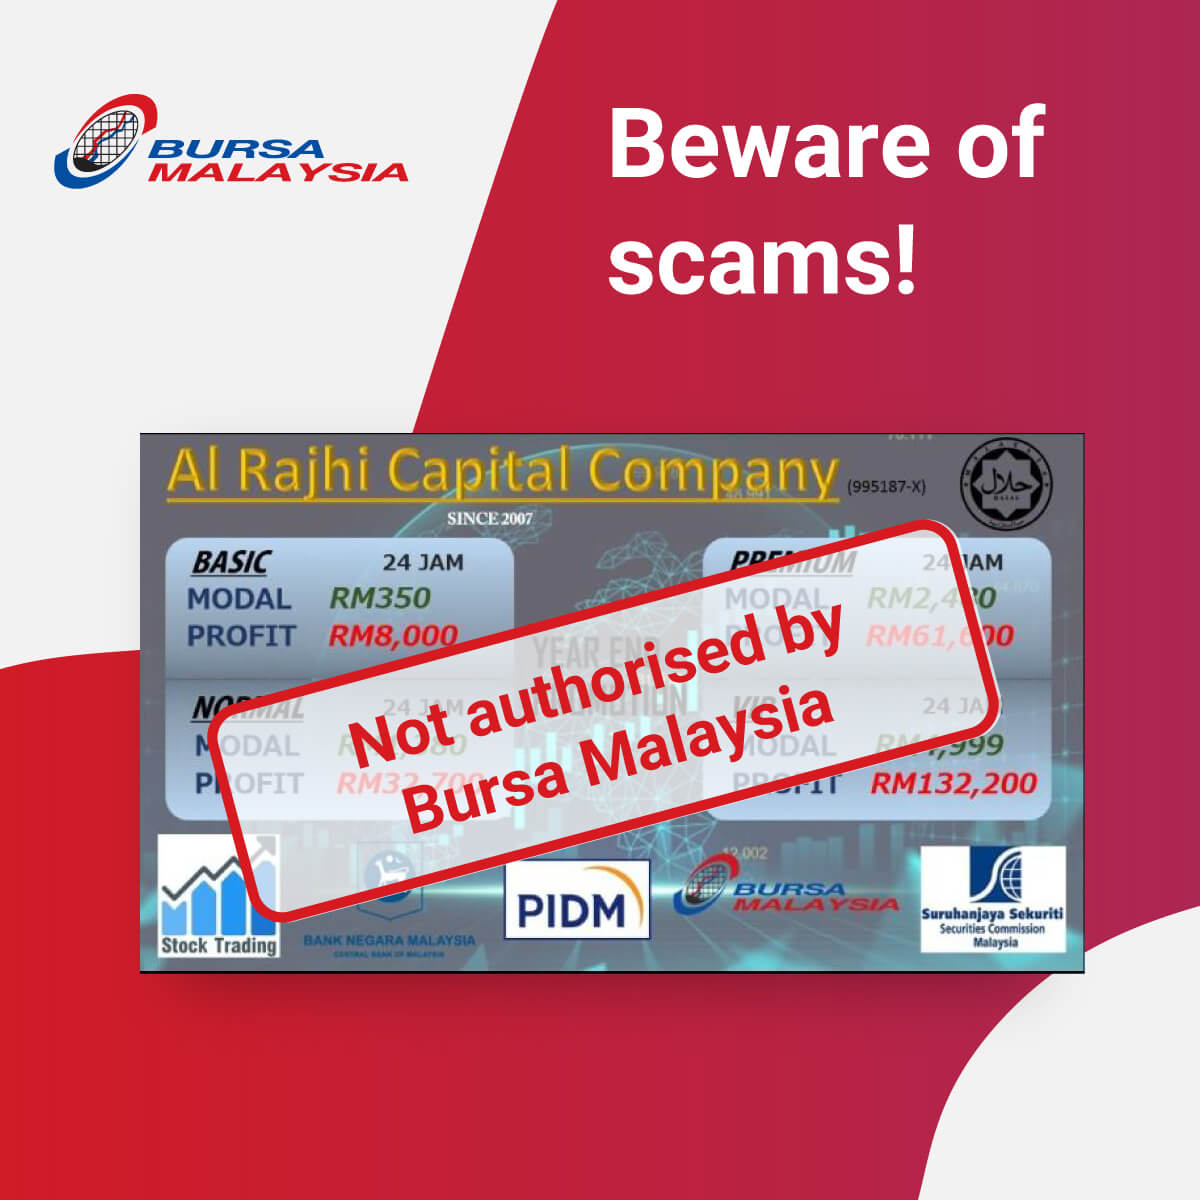 scam-img